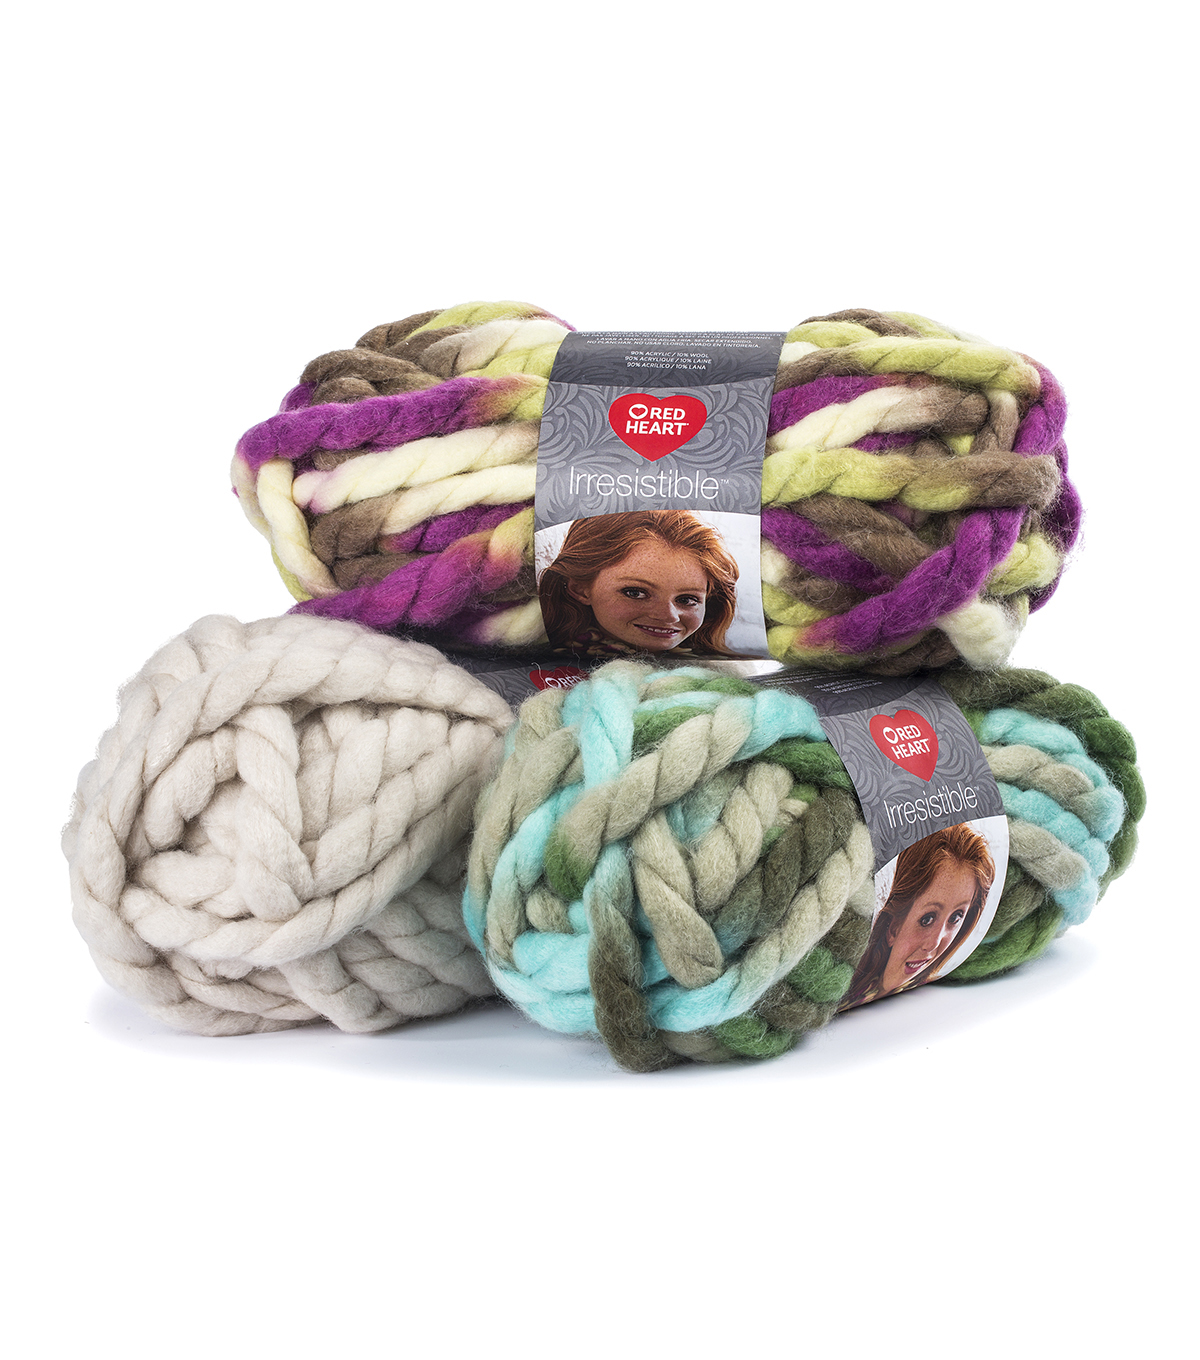 Red Heart Irresistible Yarn